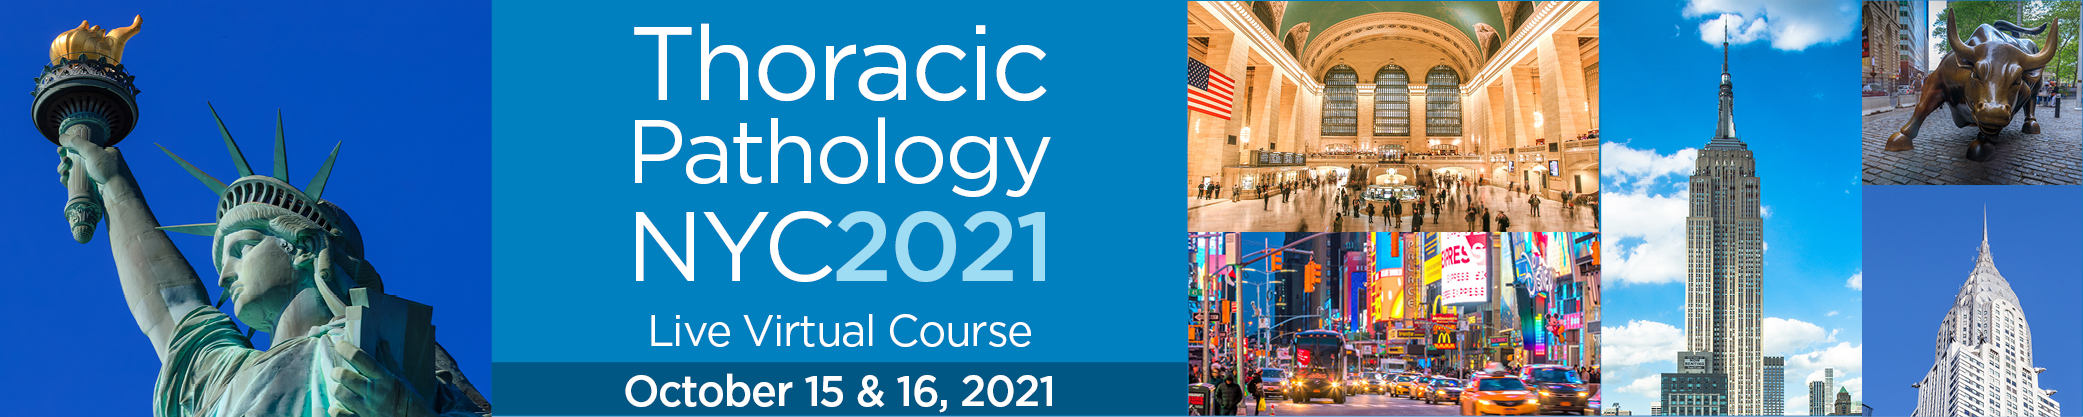 A Multidisciplinary Approach to Thoracic Pathology with Clinical, Molecular and Radiologic Correlations Banner